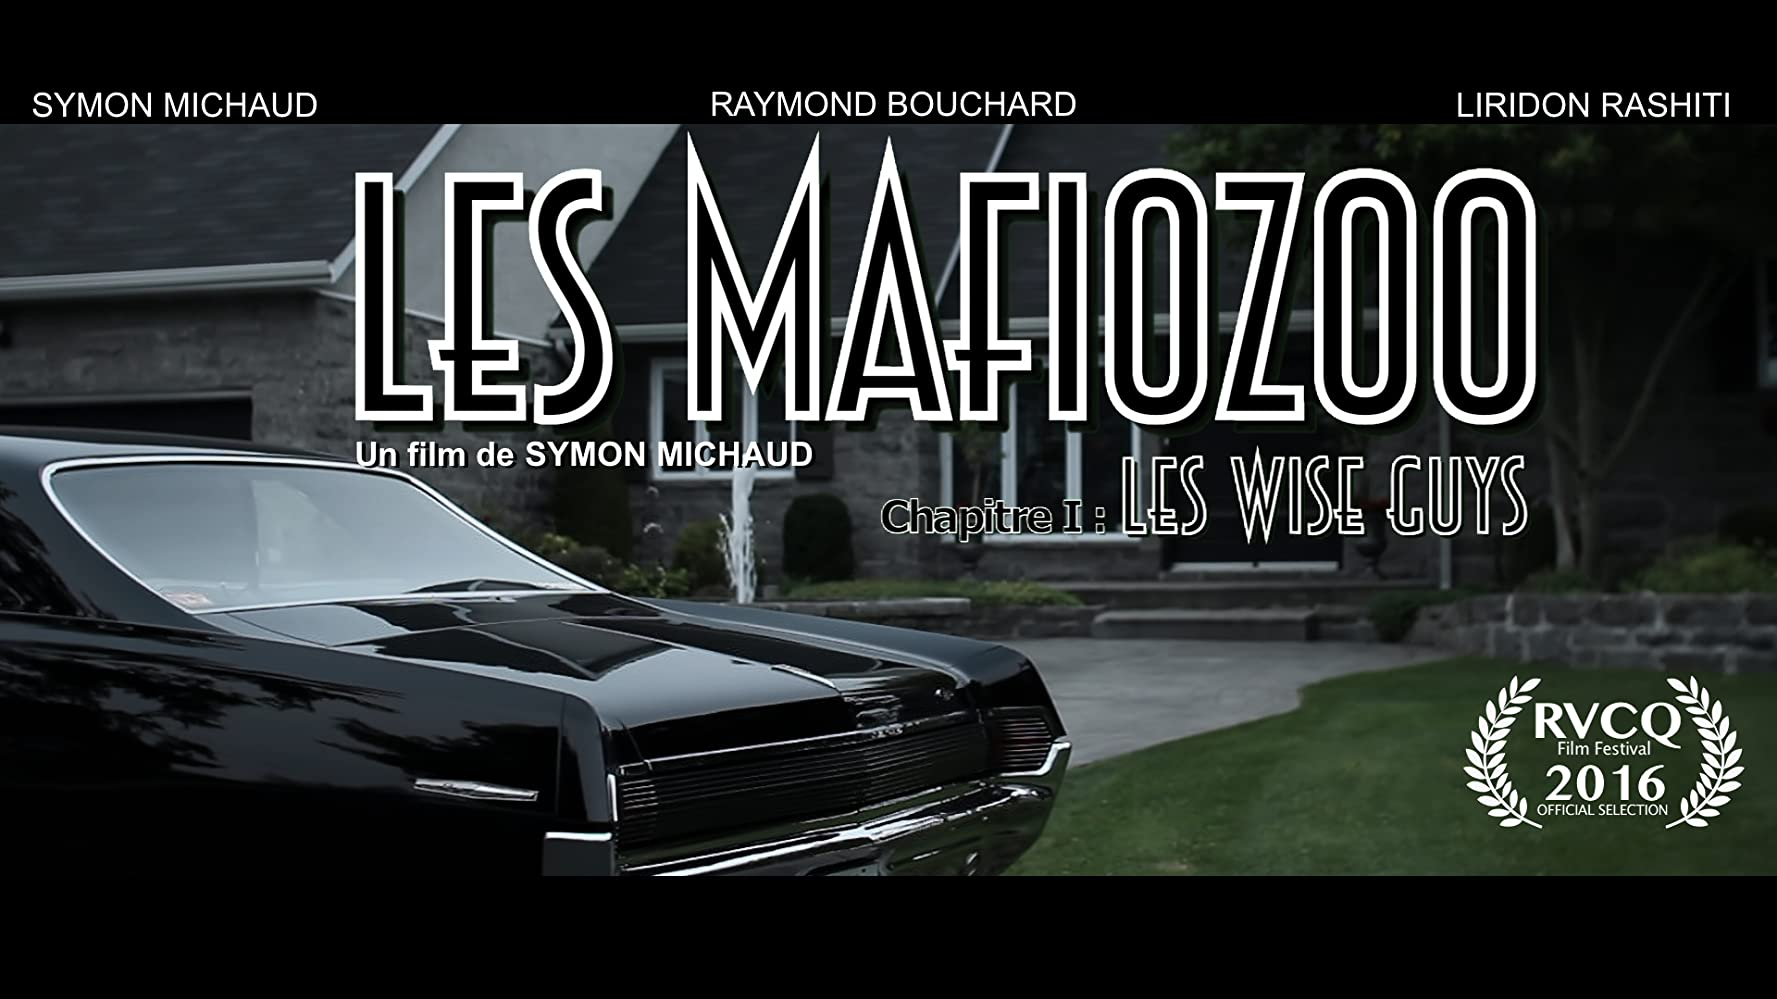 Desreta Jackson nude photos 2019